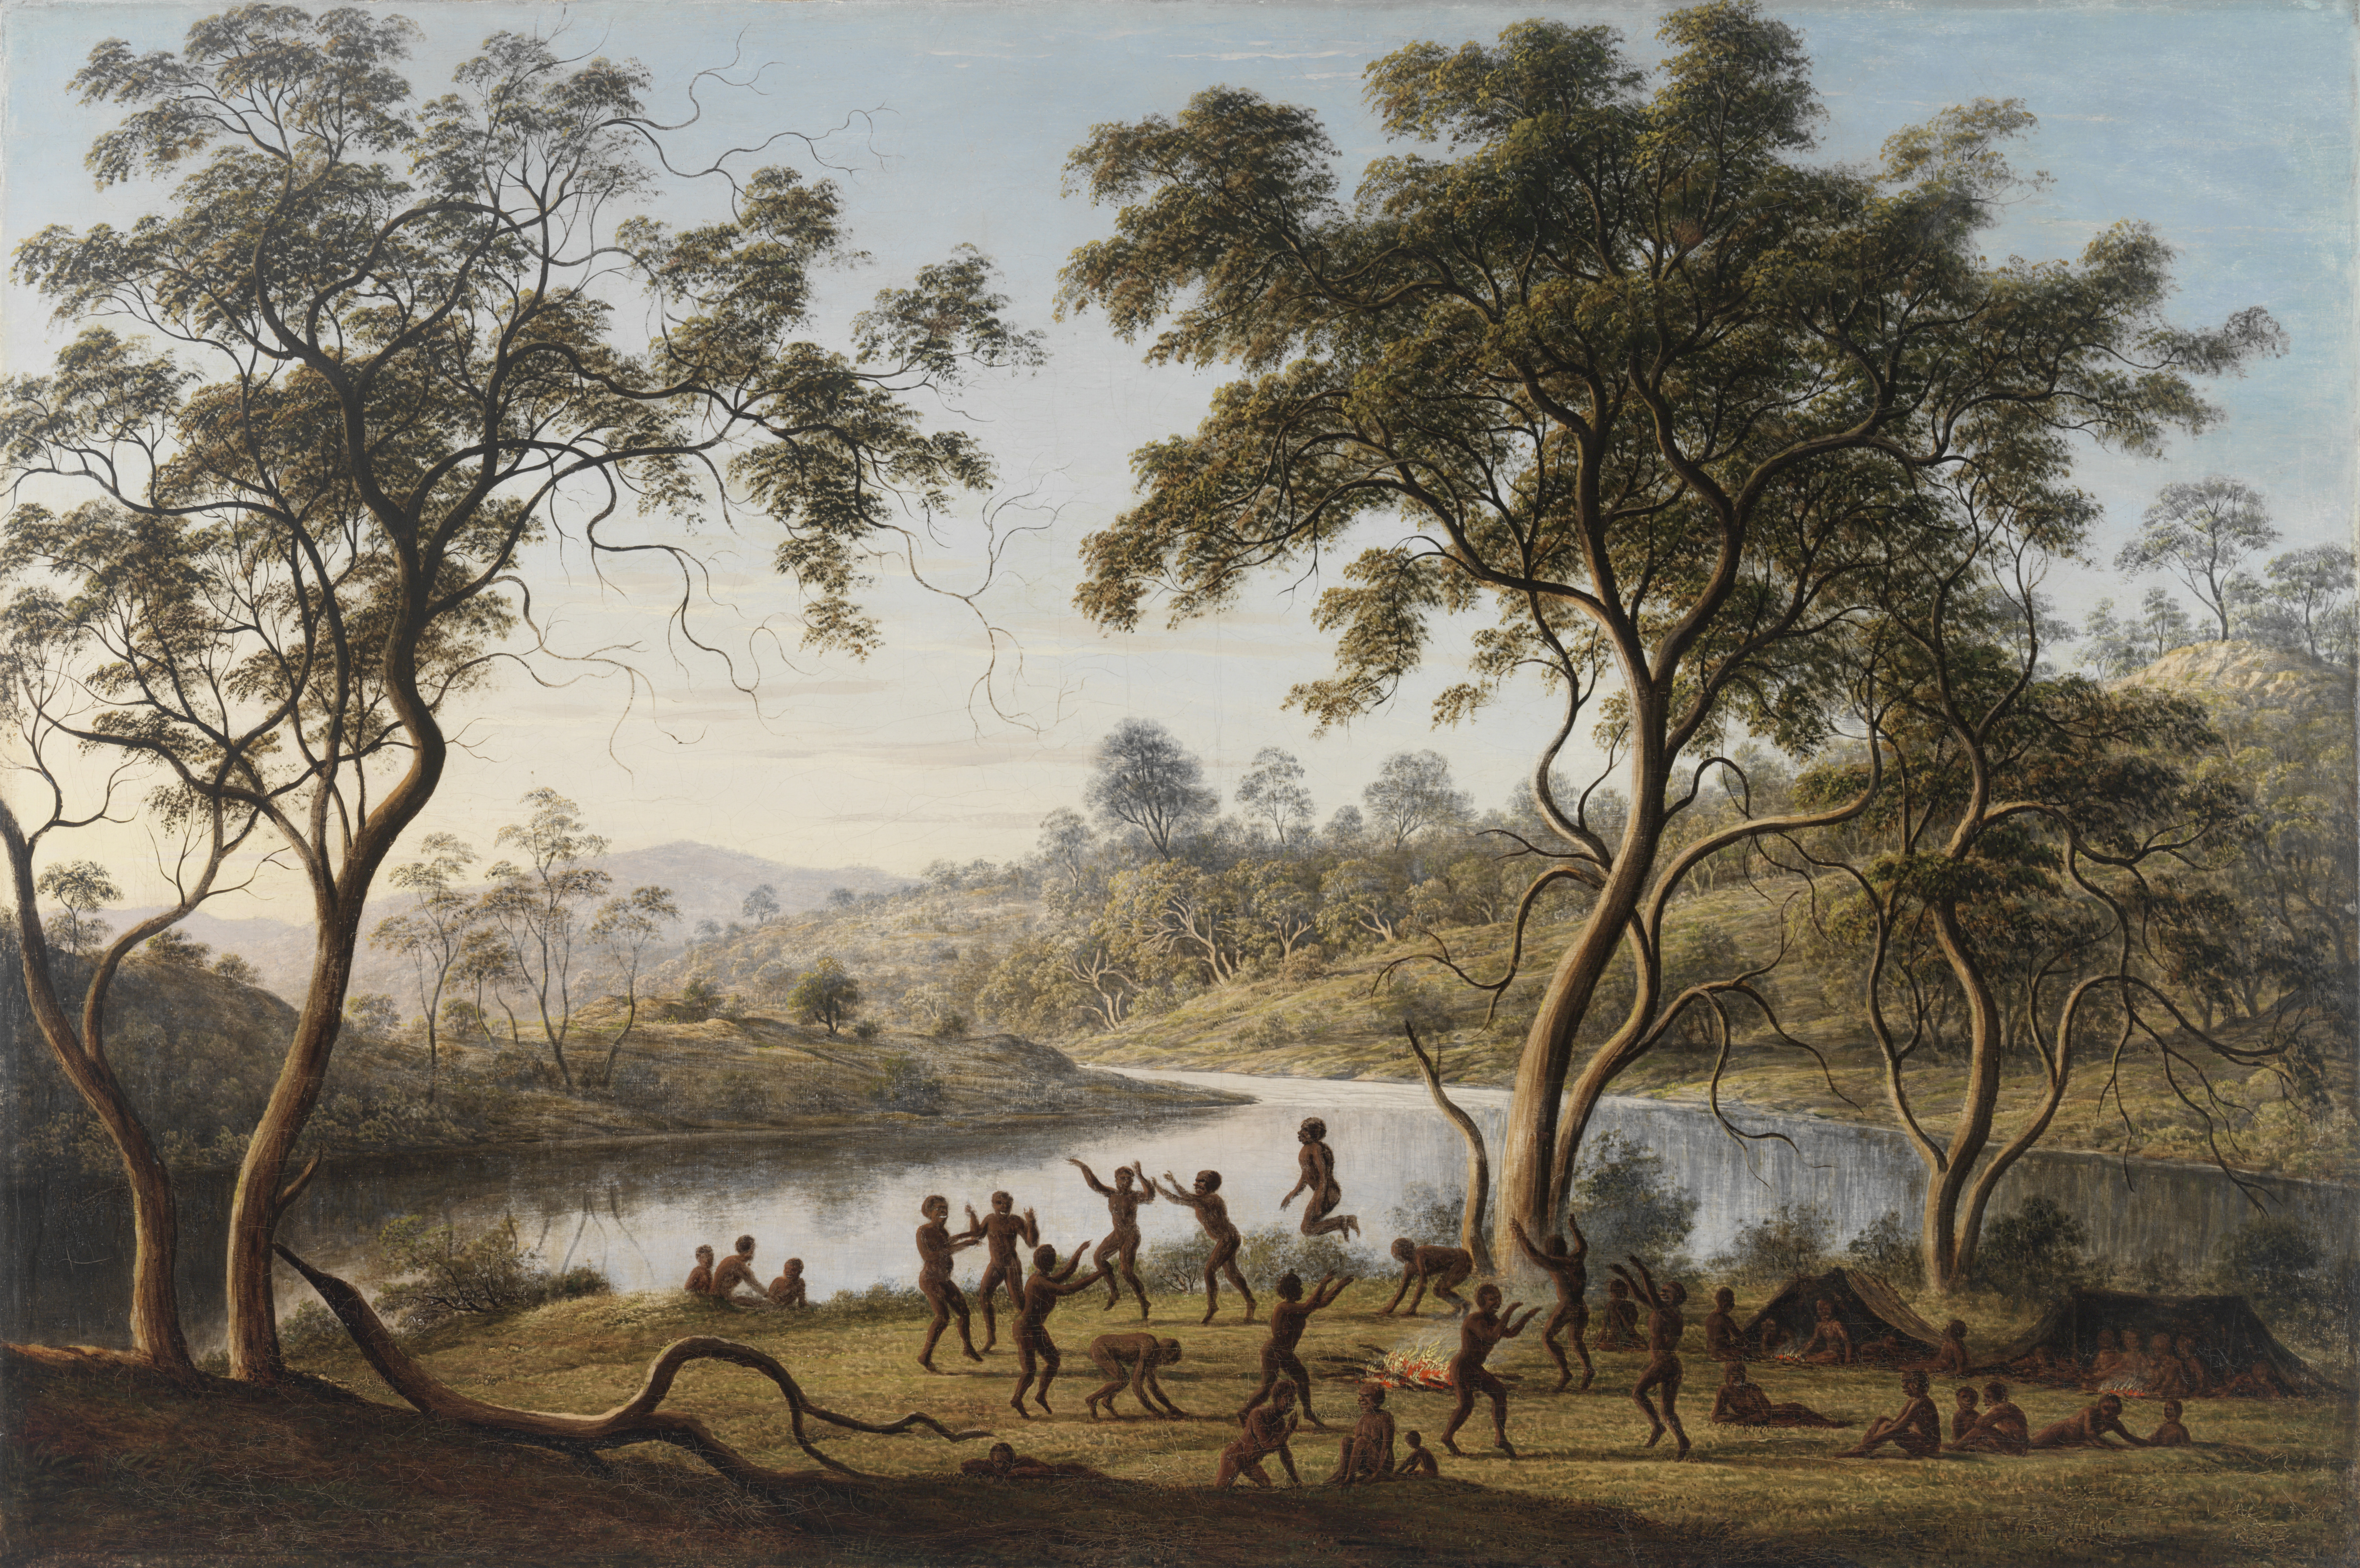 painting: Natives at a corrobory / John Glover / ML 154